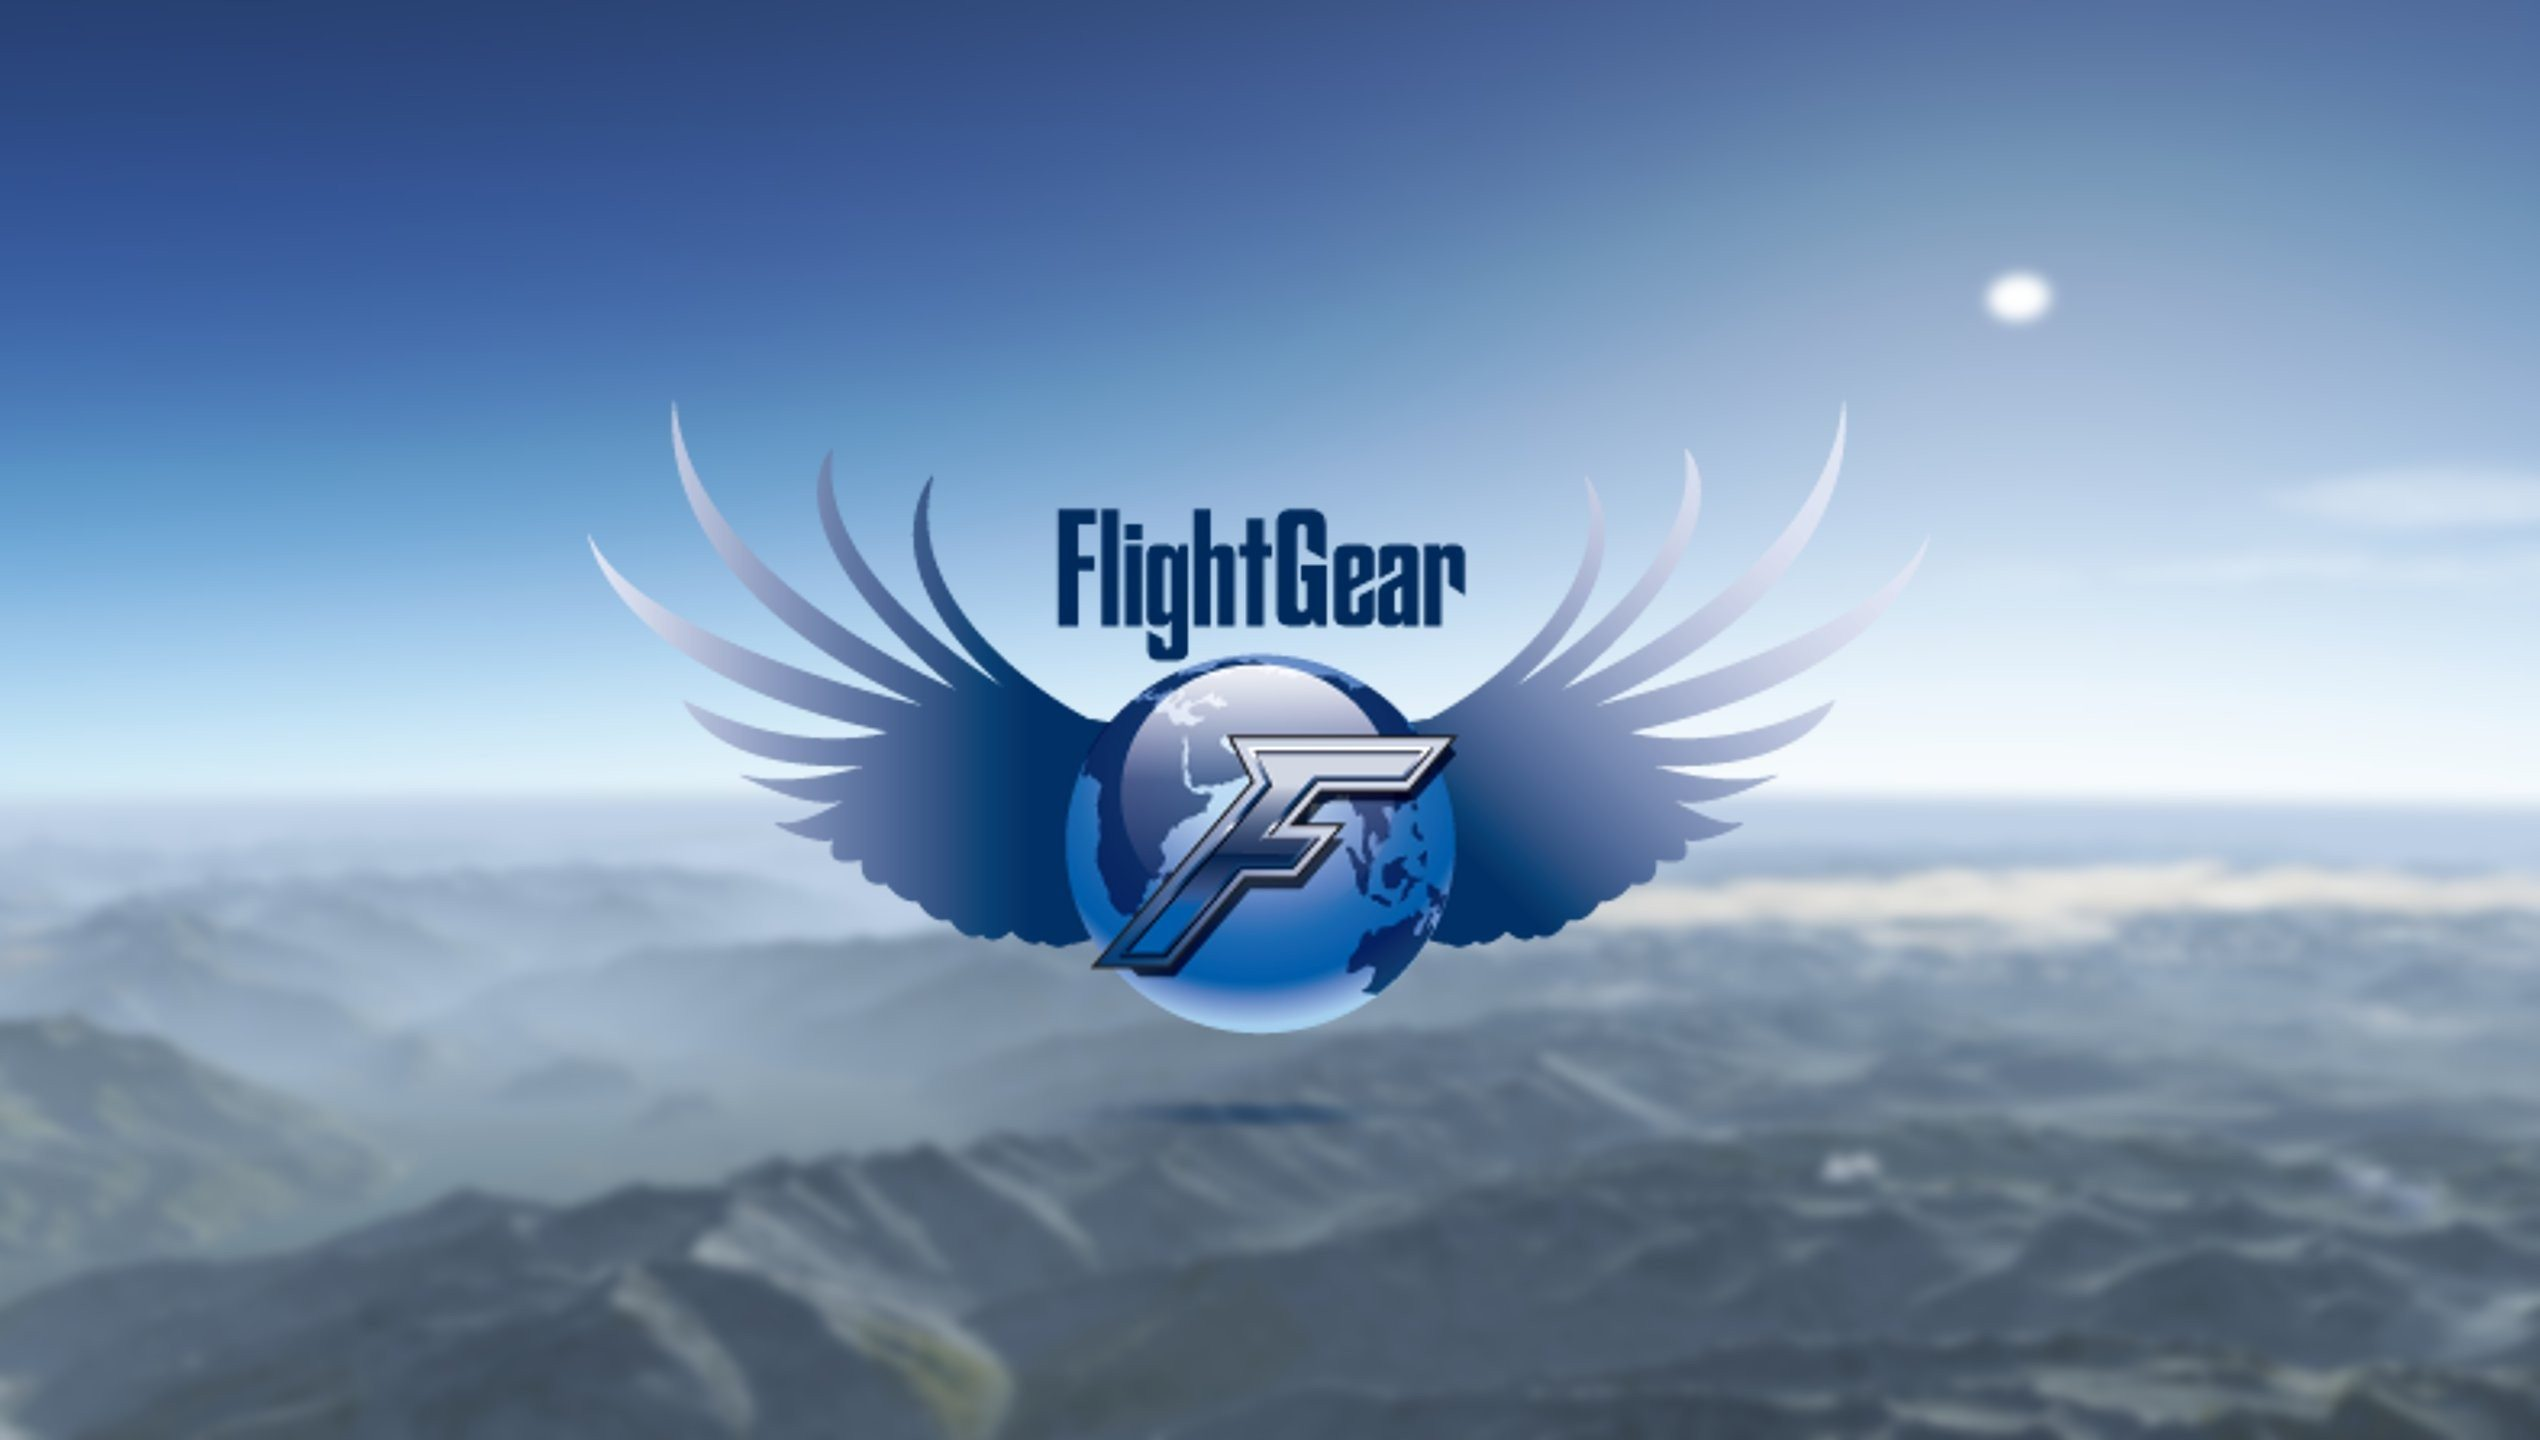 FlightGear